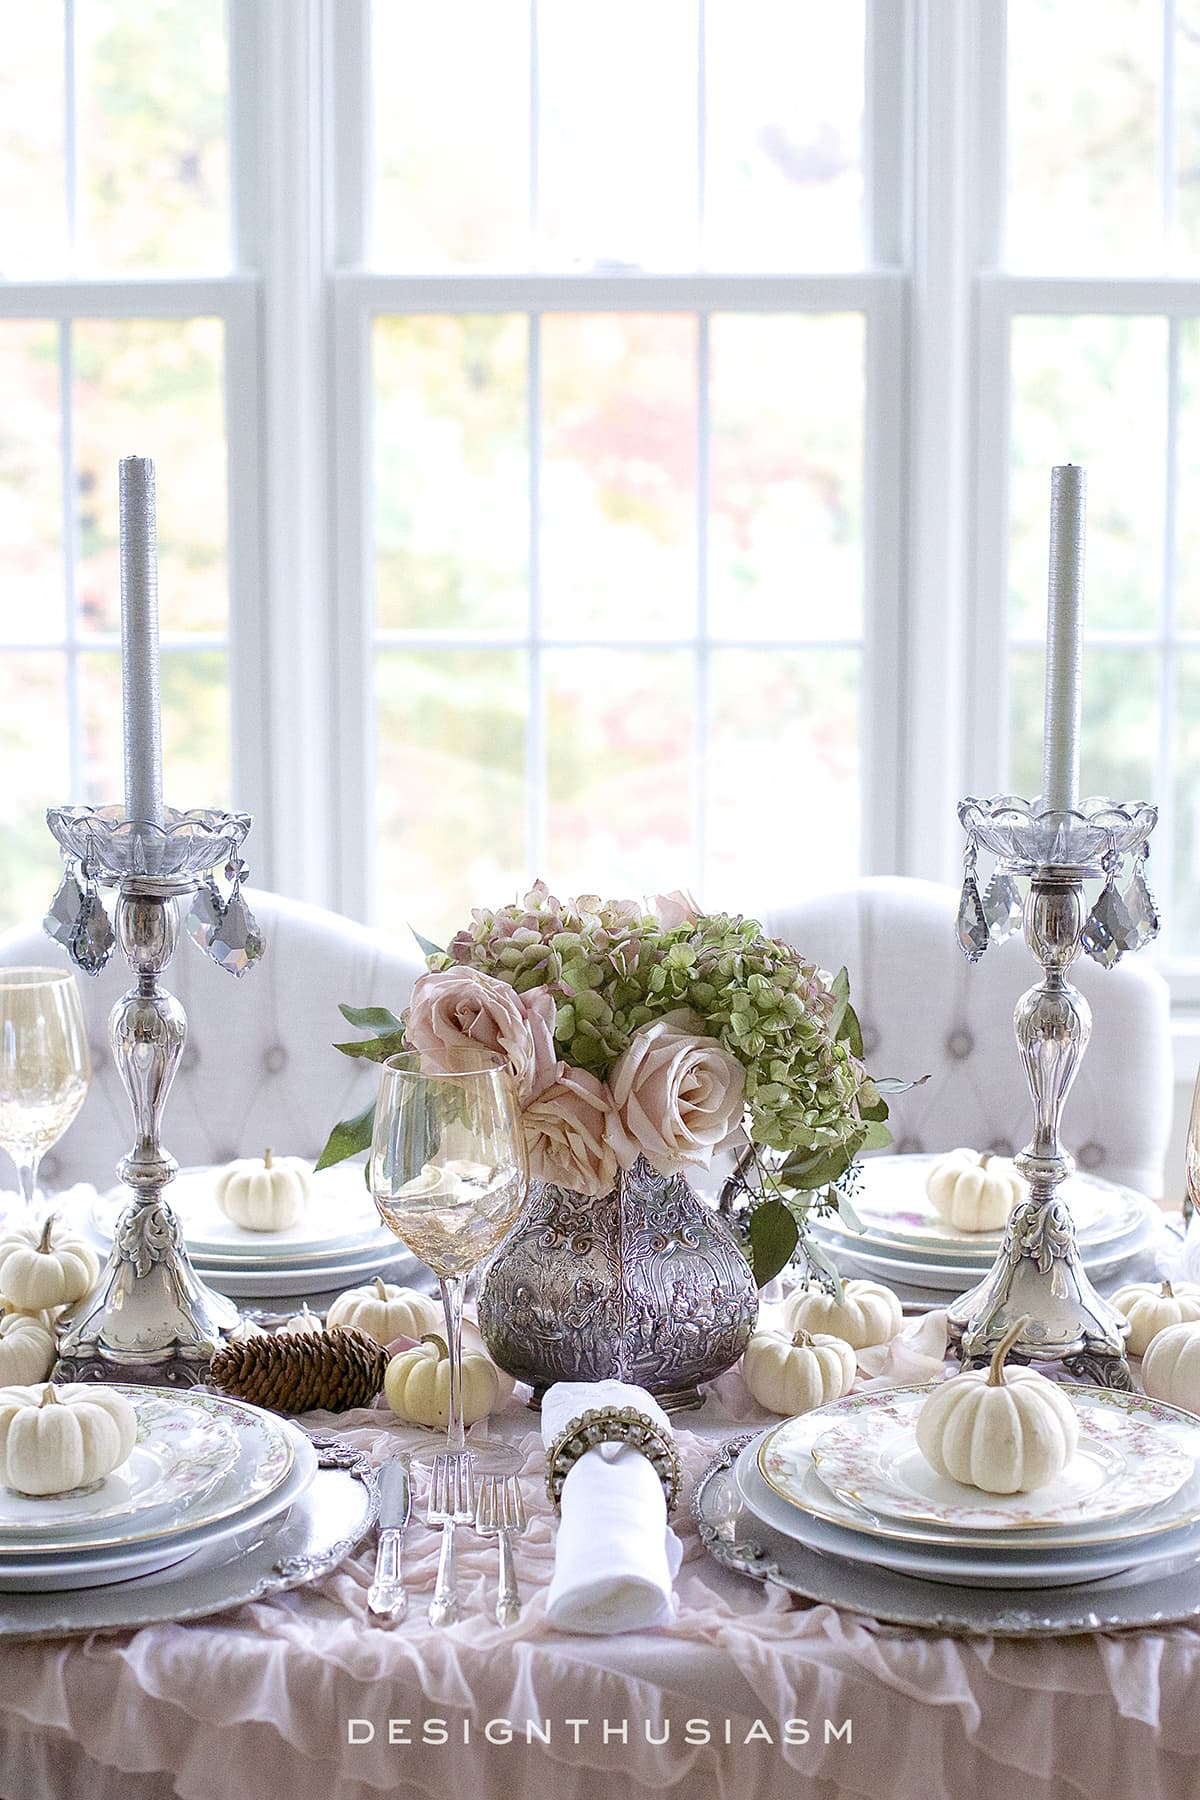 A Soft Vintage Thanksgiving Table | Designthusiasm.com